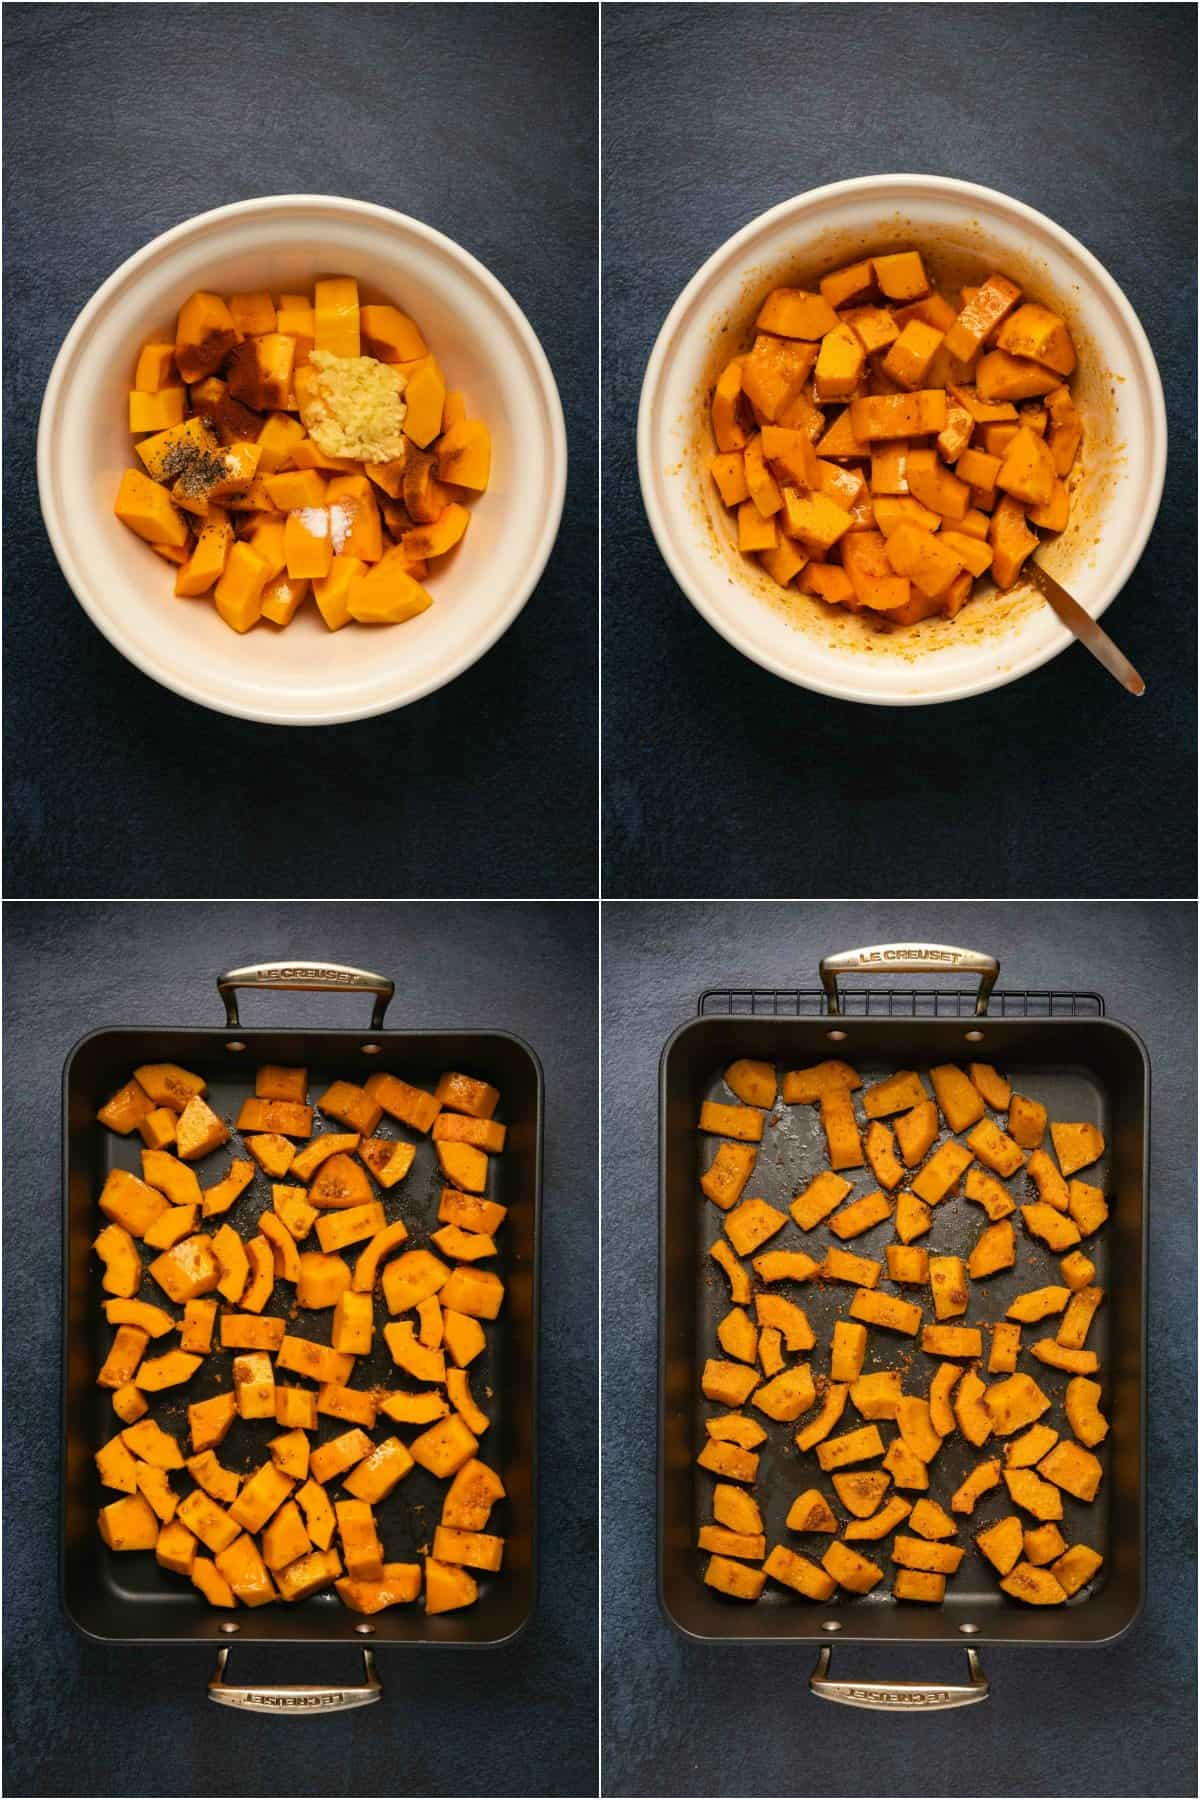 Step by step process photo collage of making roasted butternut squash.